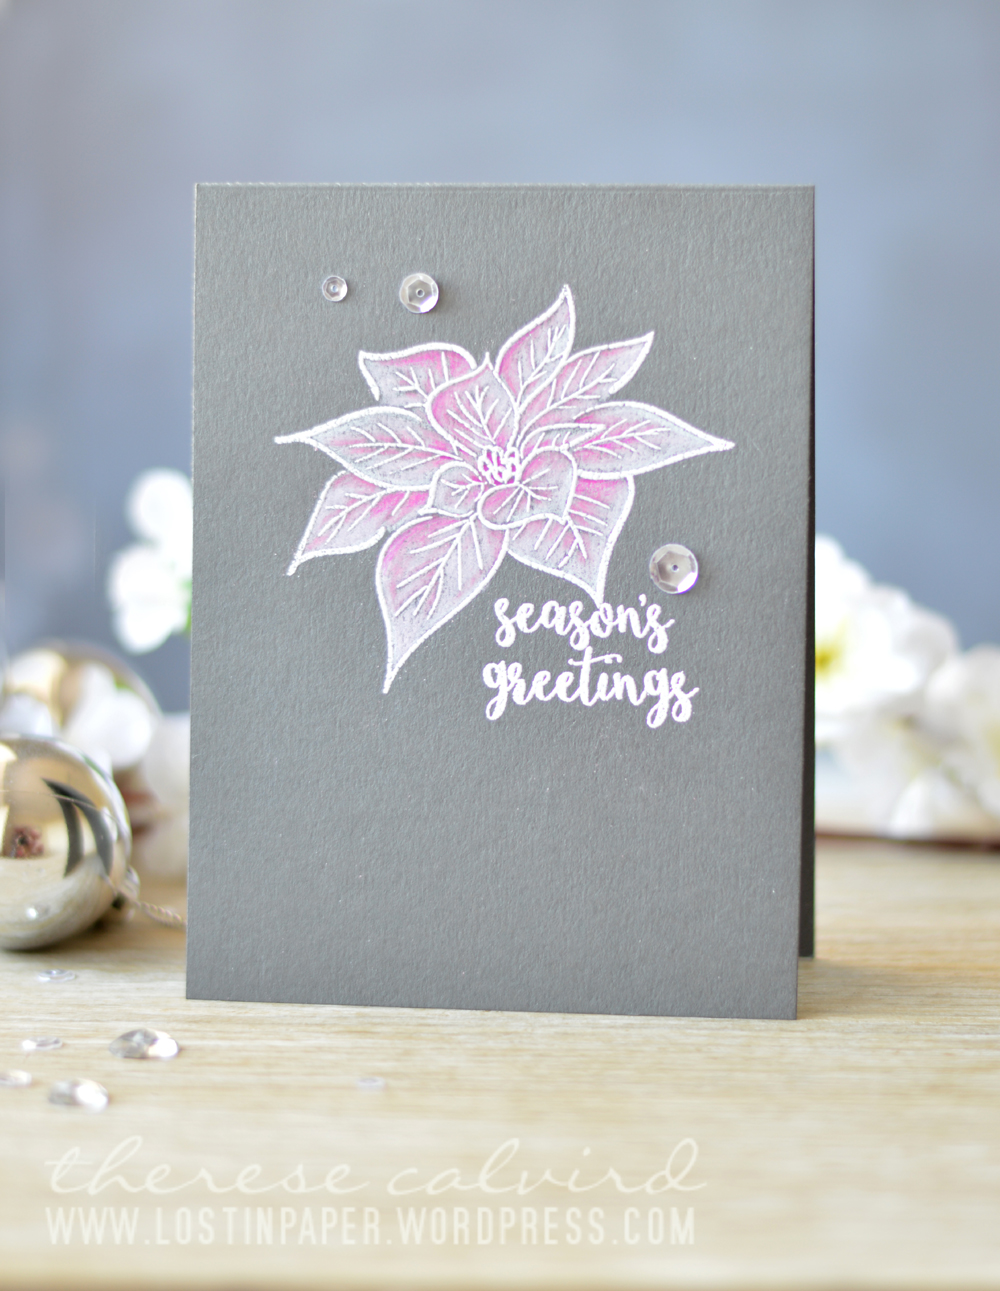 lostinpaper-altenew-poinsettia-pine-avery-elle-christmas-florals-card-video-1